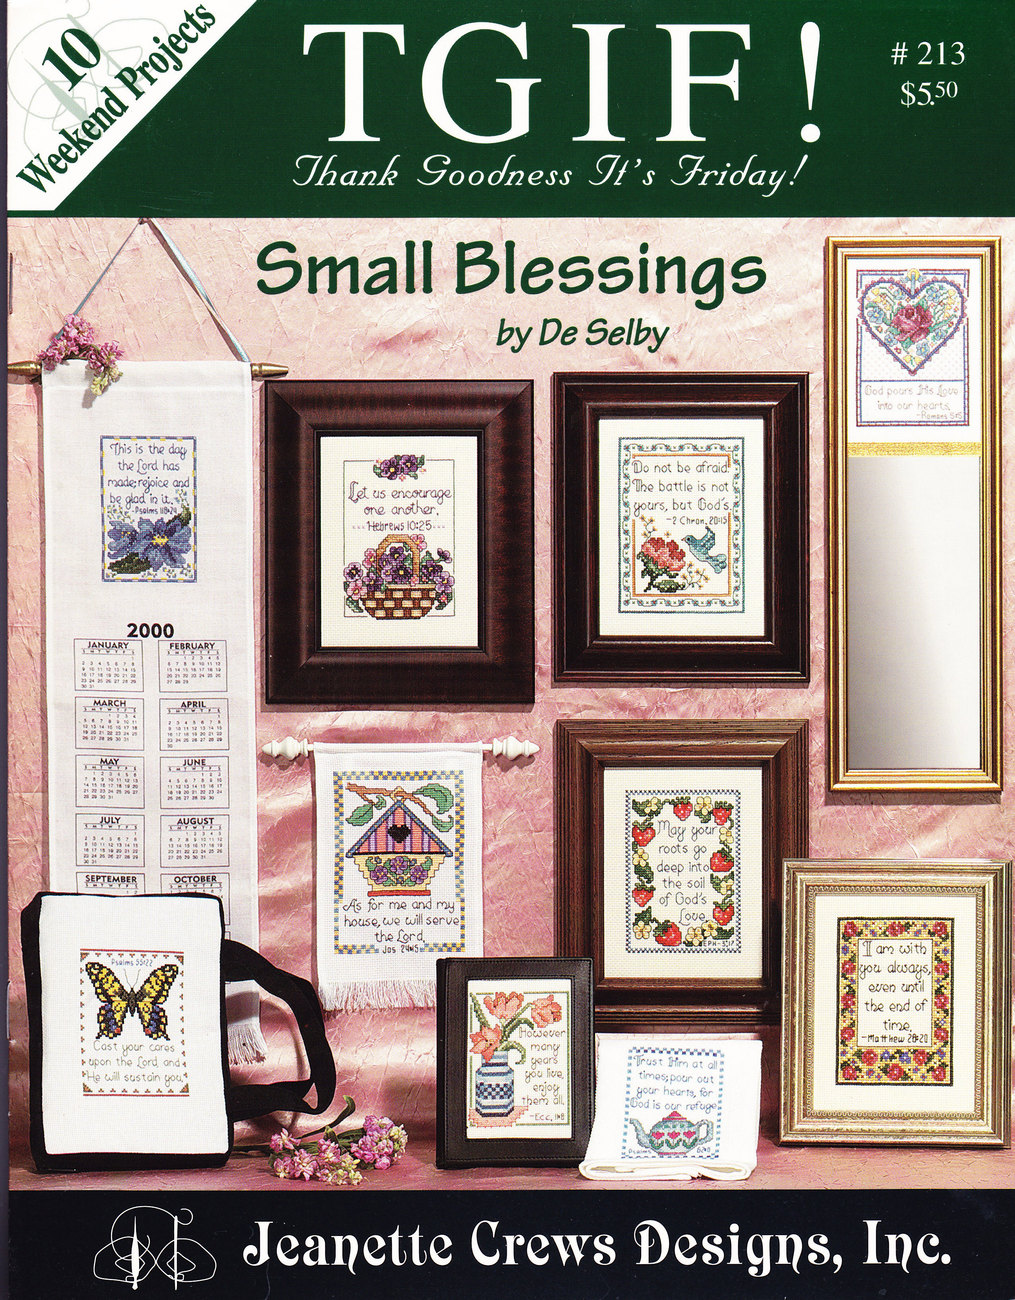 COUNTED CROSS TGIF! SMALL BLESSINGS BY DE SELBY #213